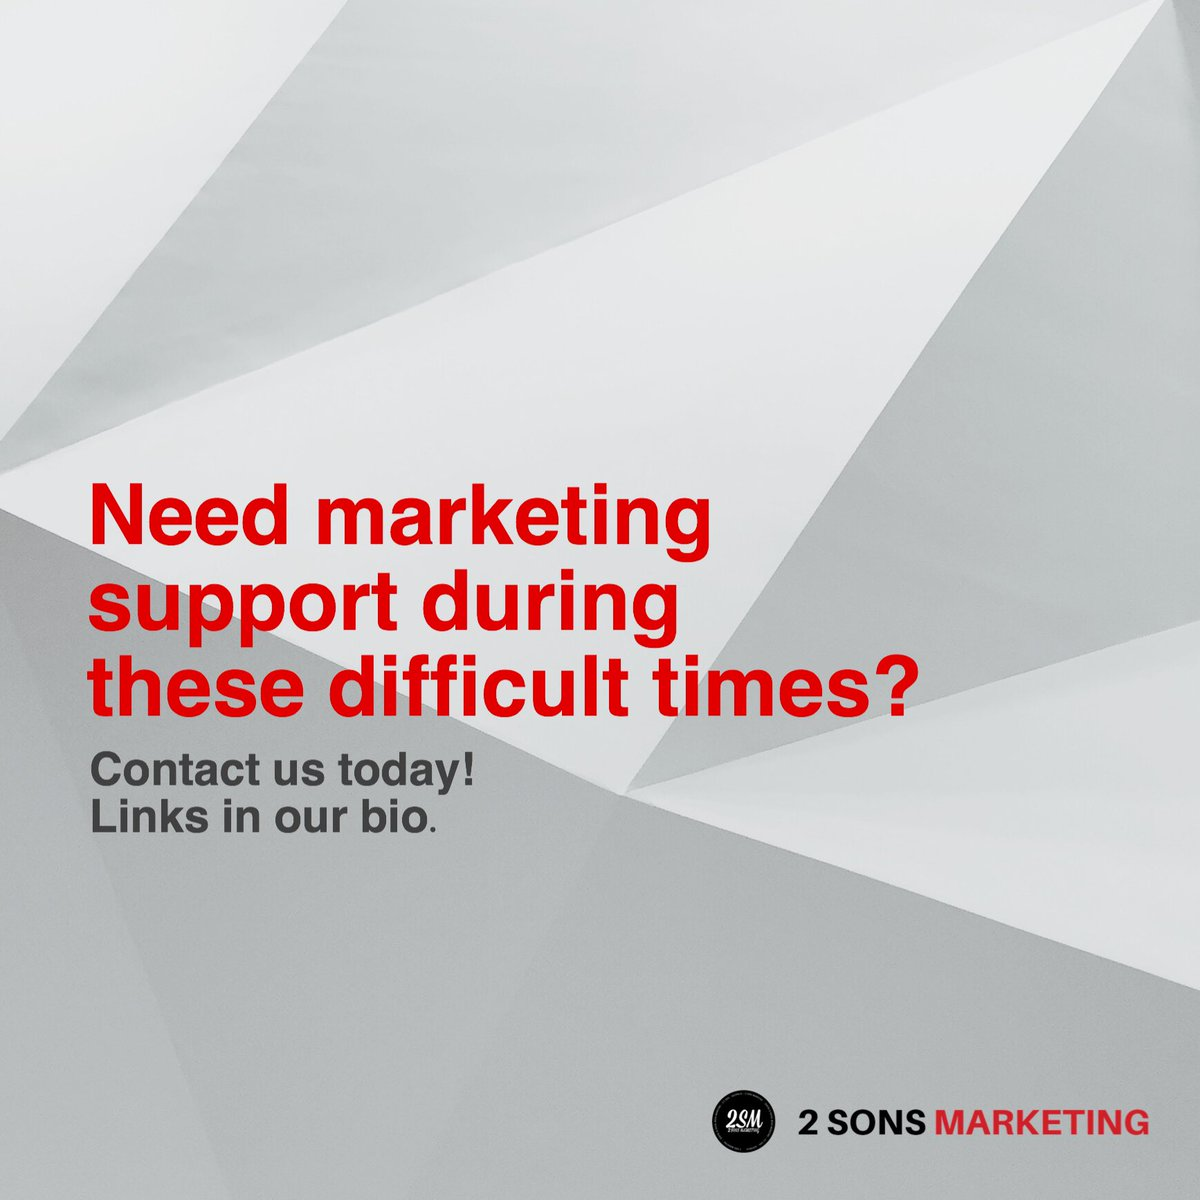 We're here to help anyway we can. Digital or Social Media Marketing.  Web Design and SEO support.  Contact us today via the links in our Bio. #sydneybusiness #australiansupport #sydneysocialmedia #businesssupport #smallbusinesssupport #sydneydigitalmarketing #sydneywebsitedesignpic.twitter.com/6Pc91bFTjK